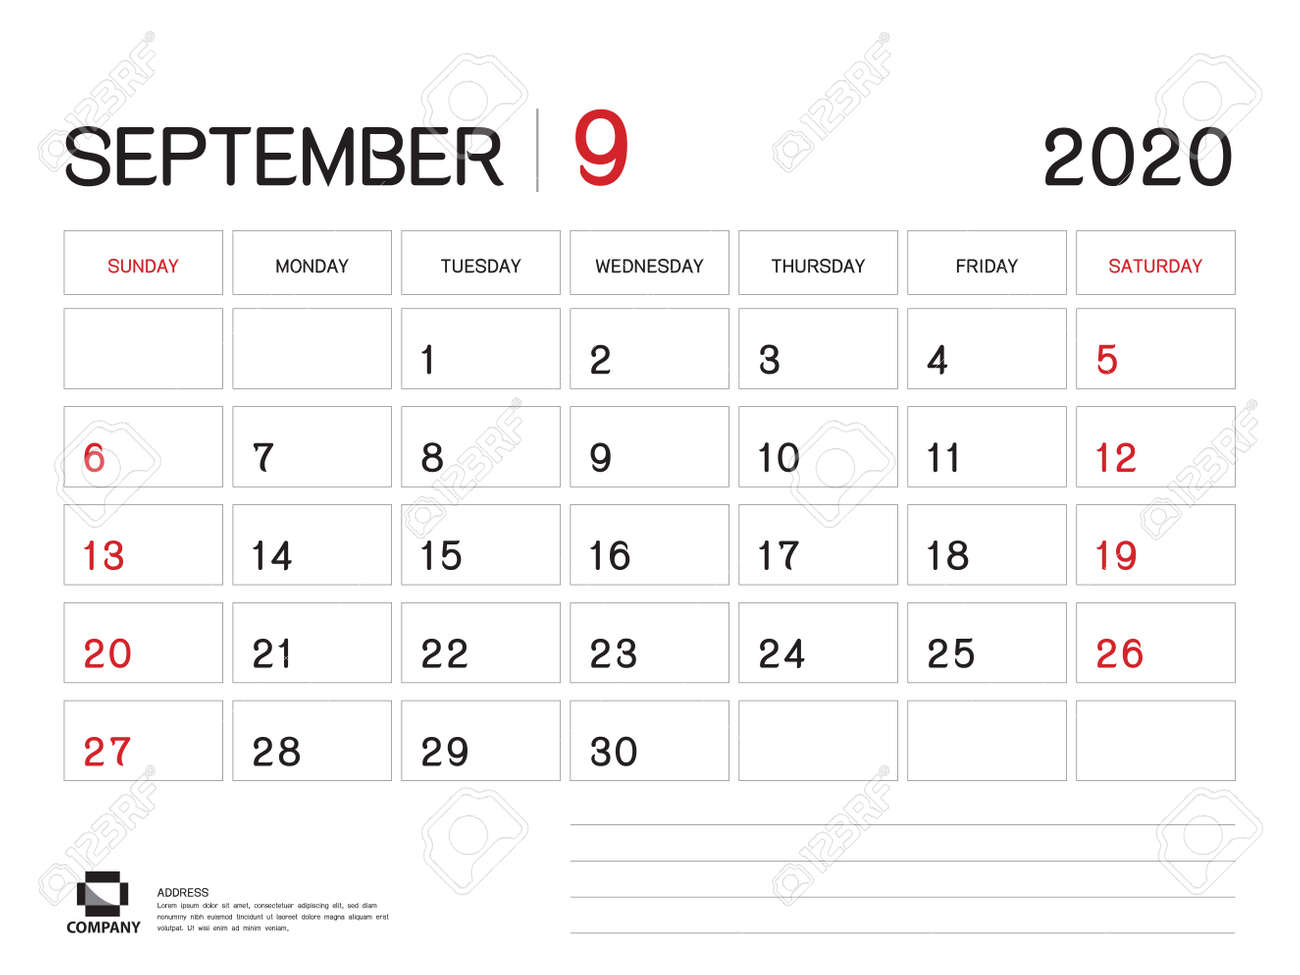 Ut 2020 Calendar SEPTEMBER 2020 Year Template, Calendar 2020 Vector, Desk Calendar